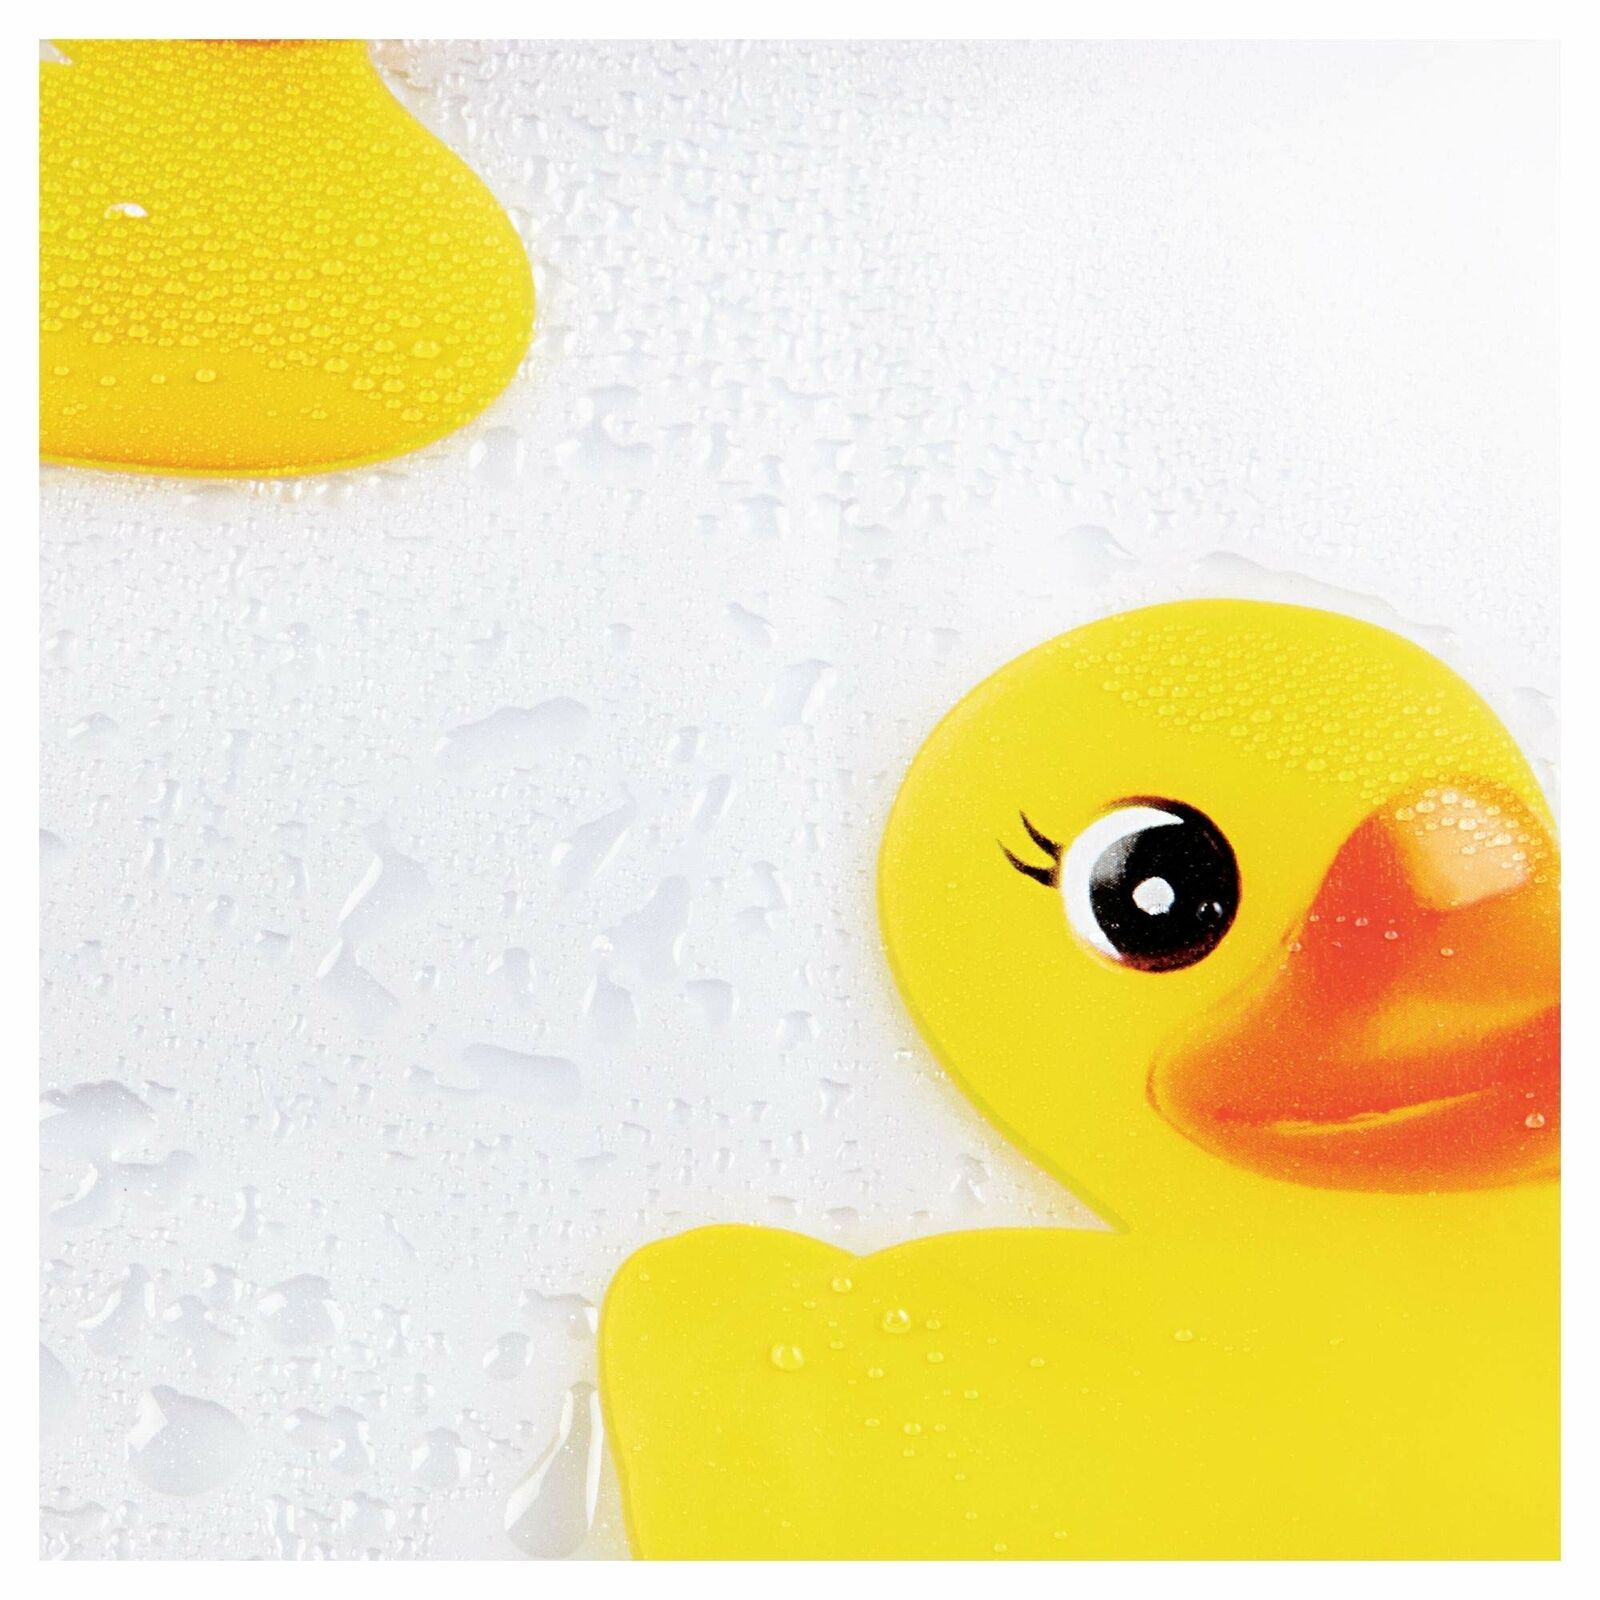 NEW Bath Ducks Vinyl Shower Curtain Rubber Ducky Waterproof FAST Shipping